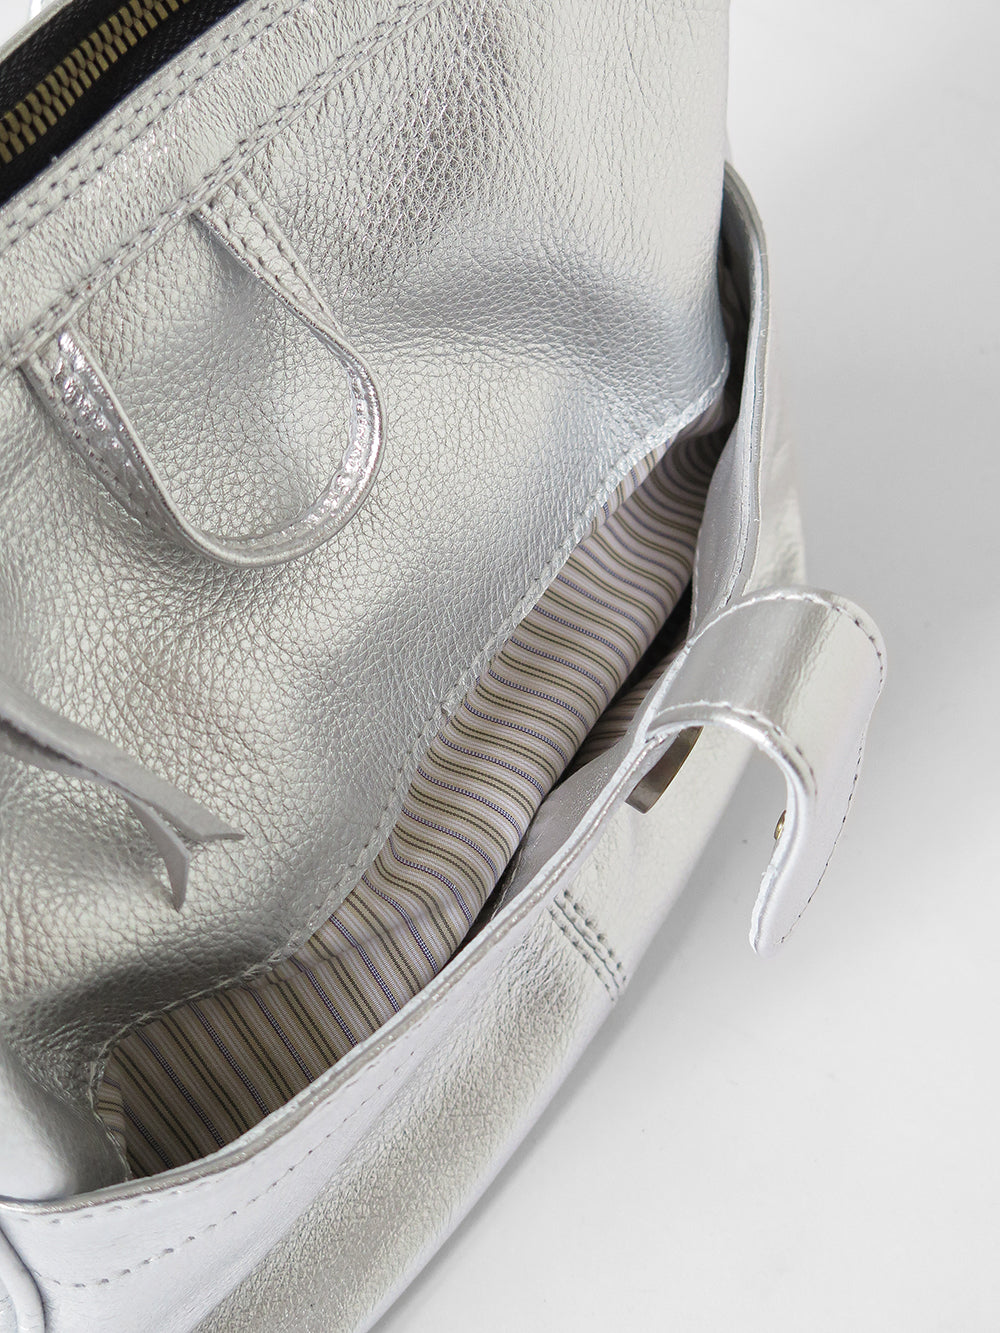 metallic leather shoulder bag in silver